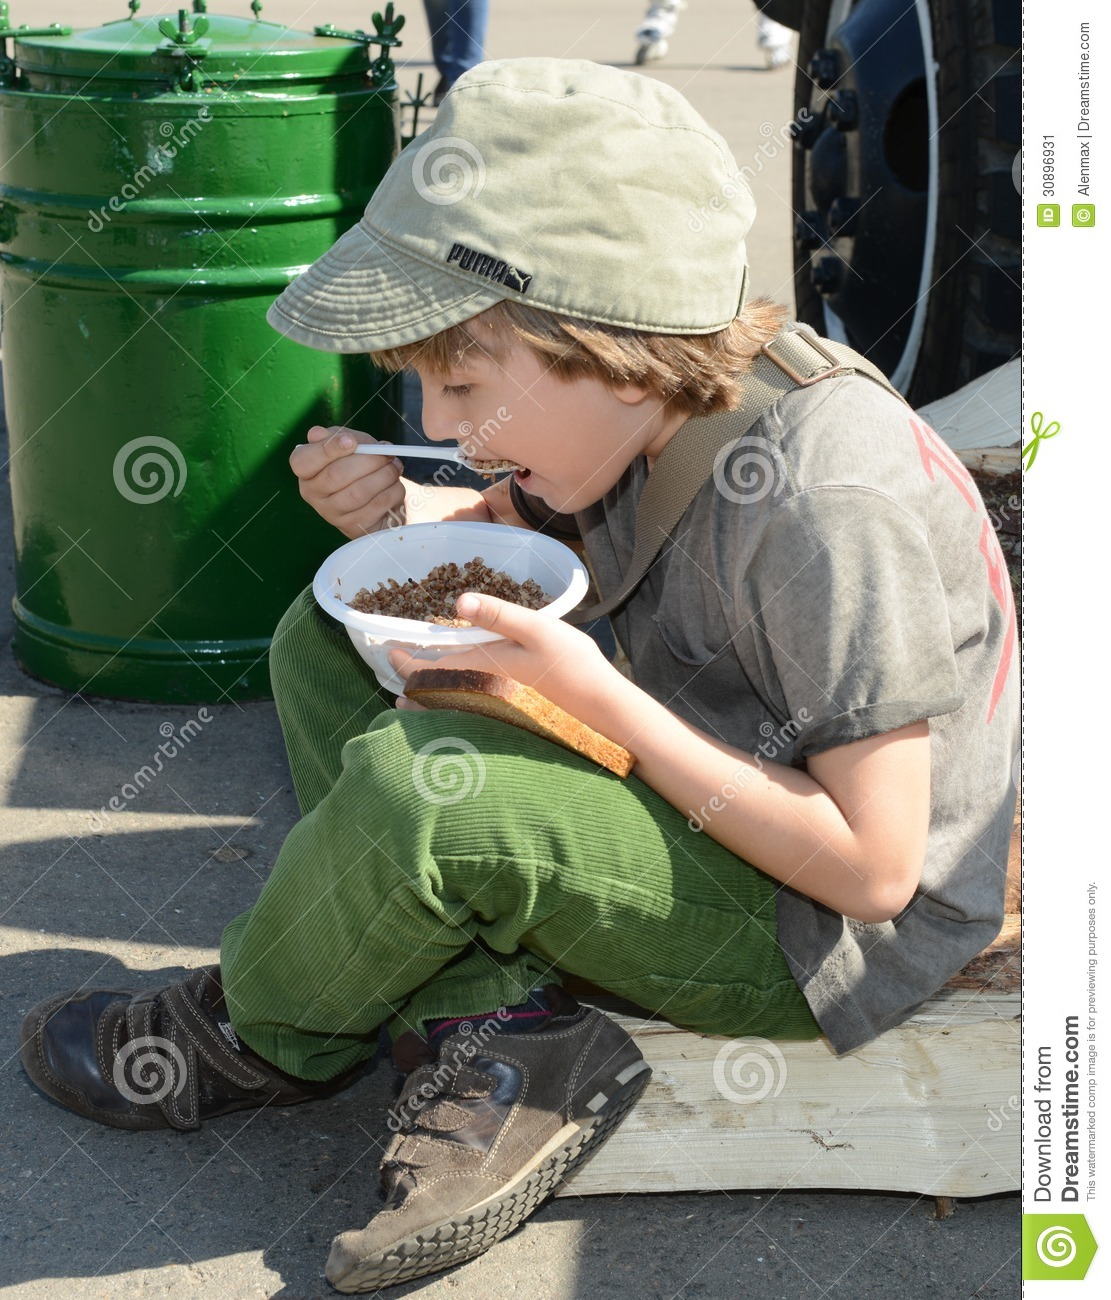 Moscow russia may 9 2013 boy eating porridge soldier in the military